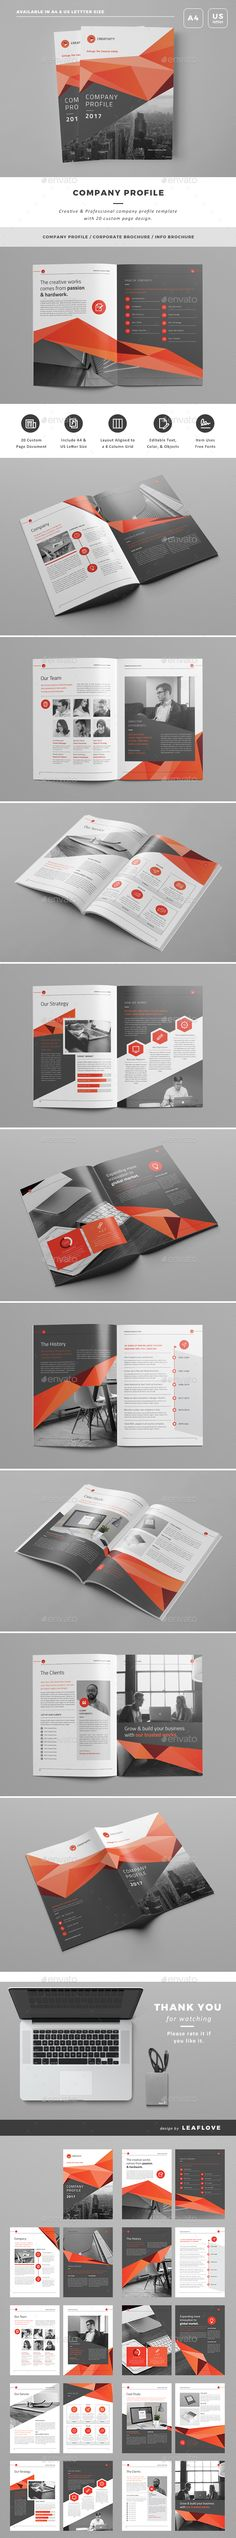 Company Profile Template InDesign INDD Inspire for work - company profile sample download